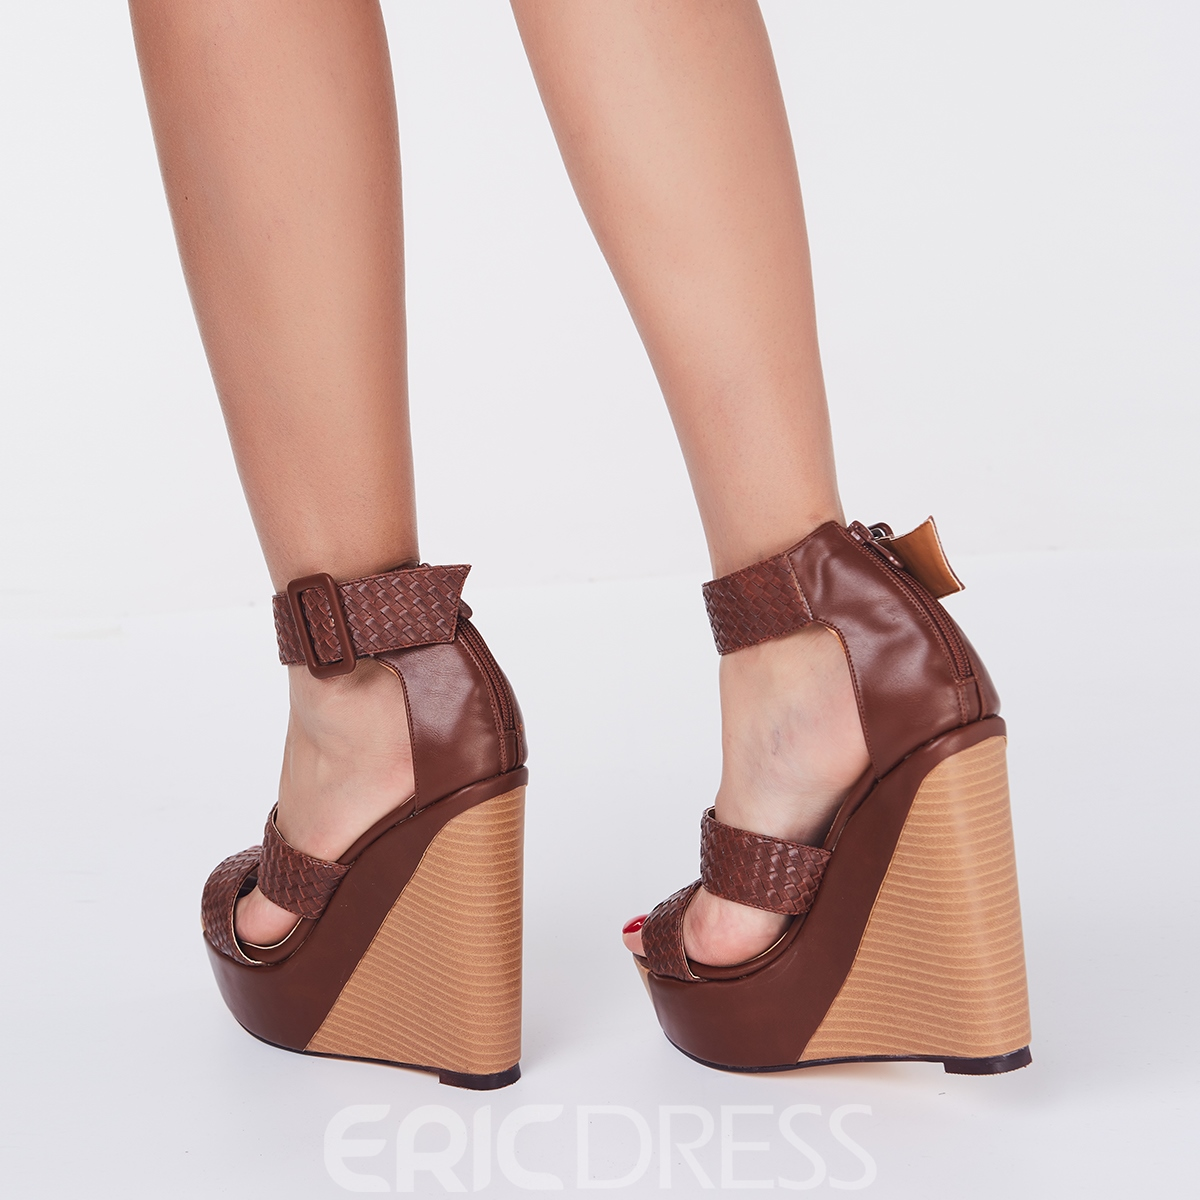 Comfortable Wedge Heel Ankle Strap Buckle High Heel Sandals